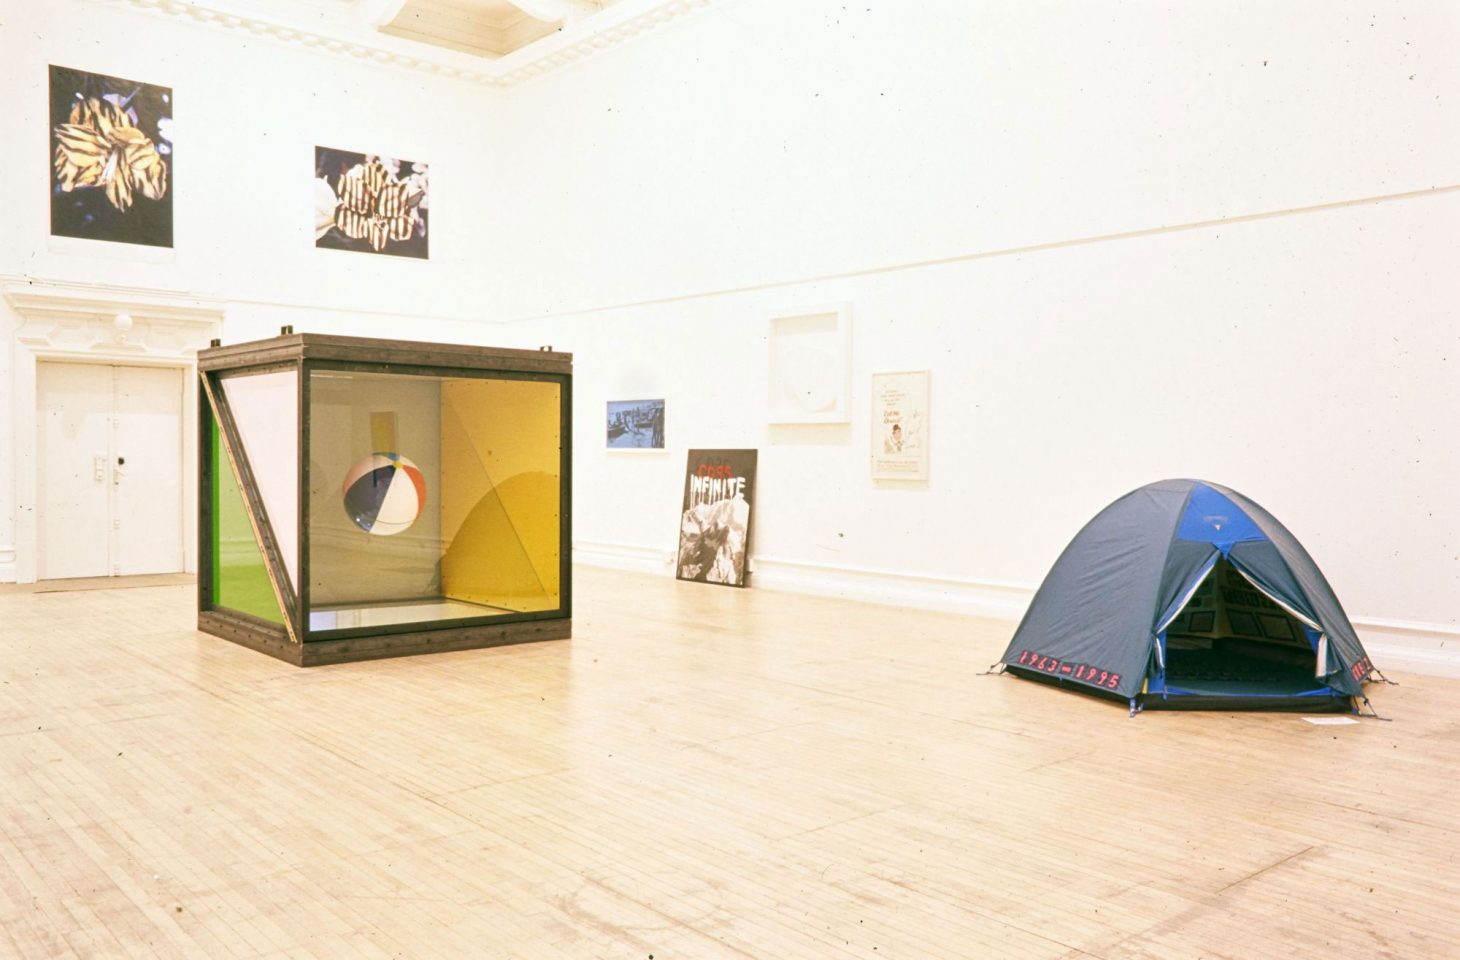 Installation view of 1995 exhibition Minky Manky including work by Sarah Lucas, Tracey Emin, Gary Hume, Damien Hirst, Matt Collishaw, Critial Decor, Stephen Pippin, Gilbert and George. Curated by Carl Freedman.